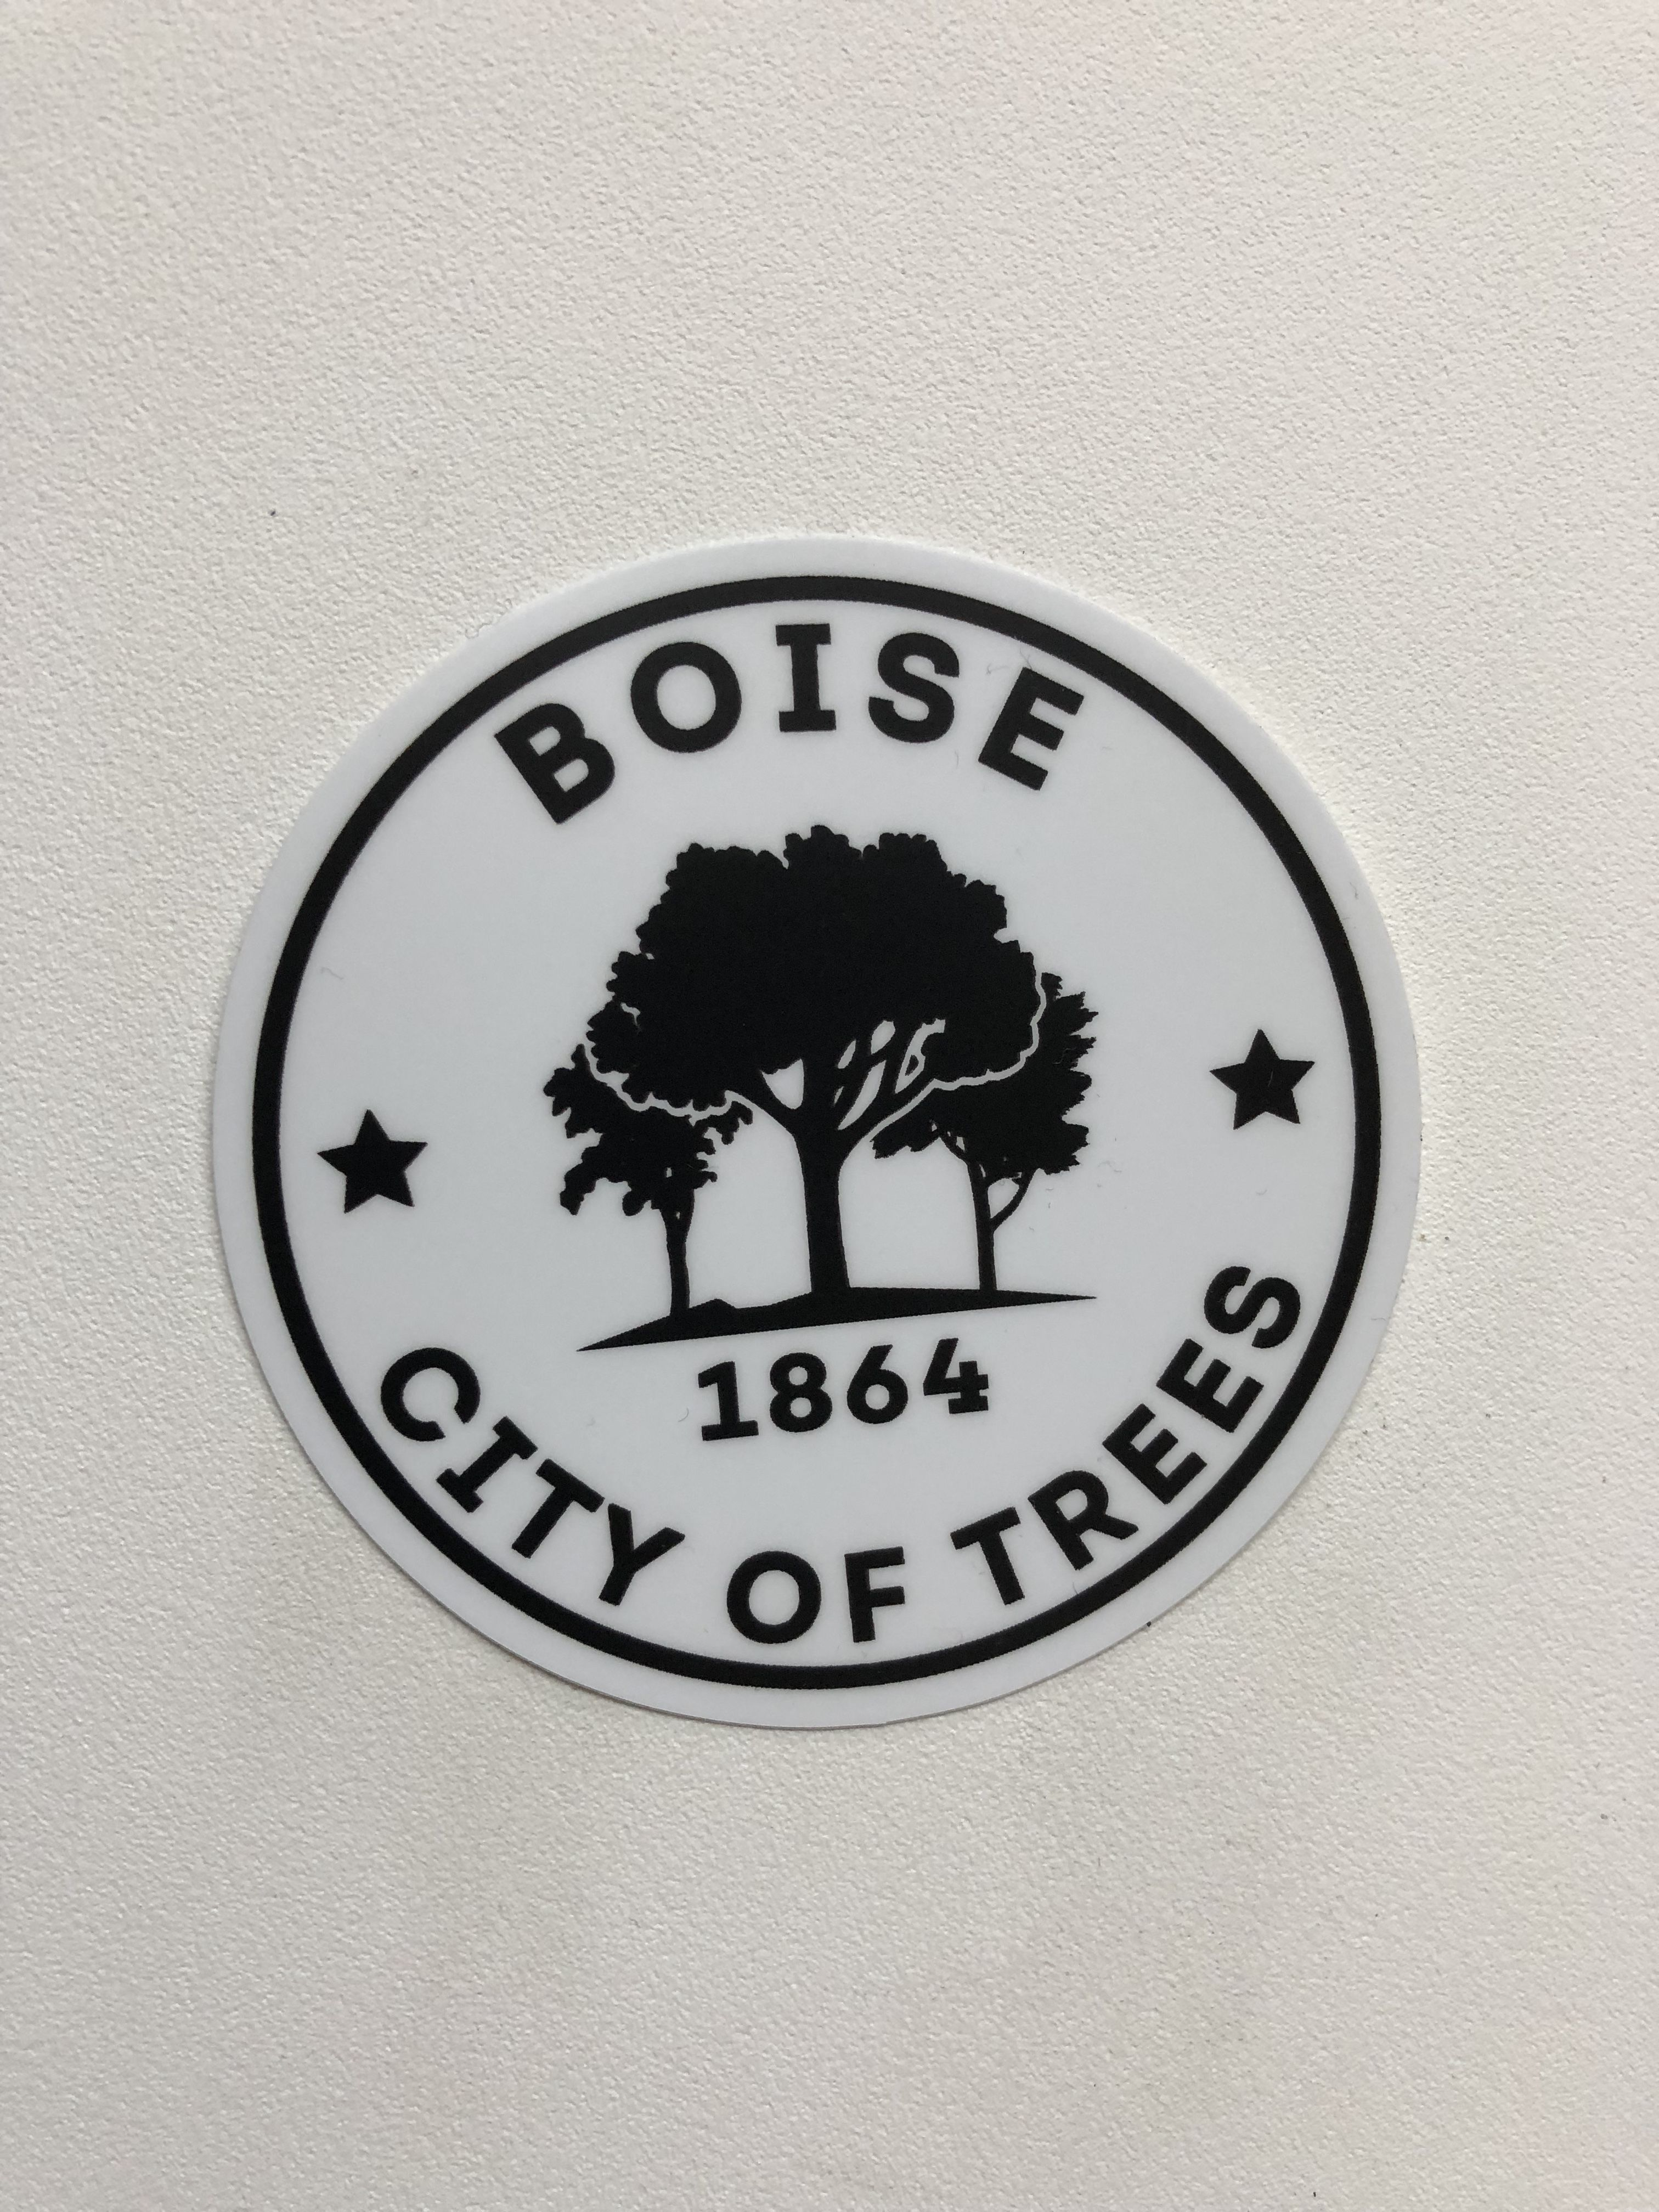 Boise city of trees 1864 sticker represent boise and the beautiful city we